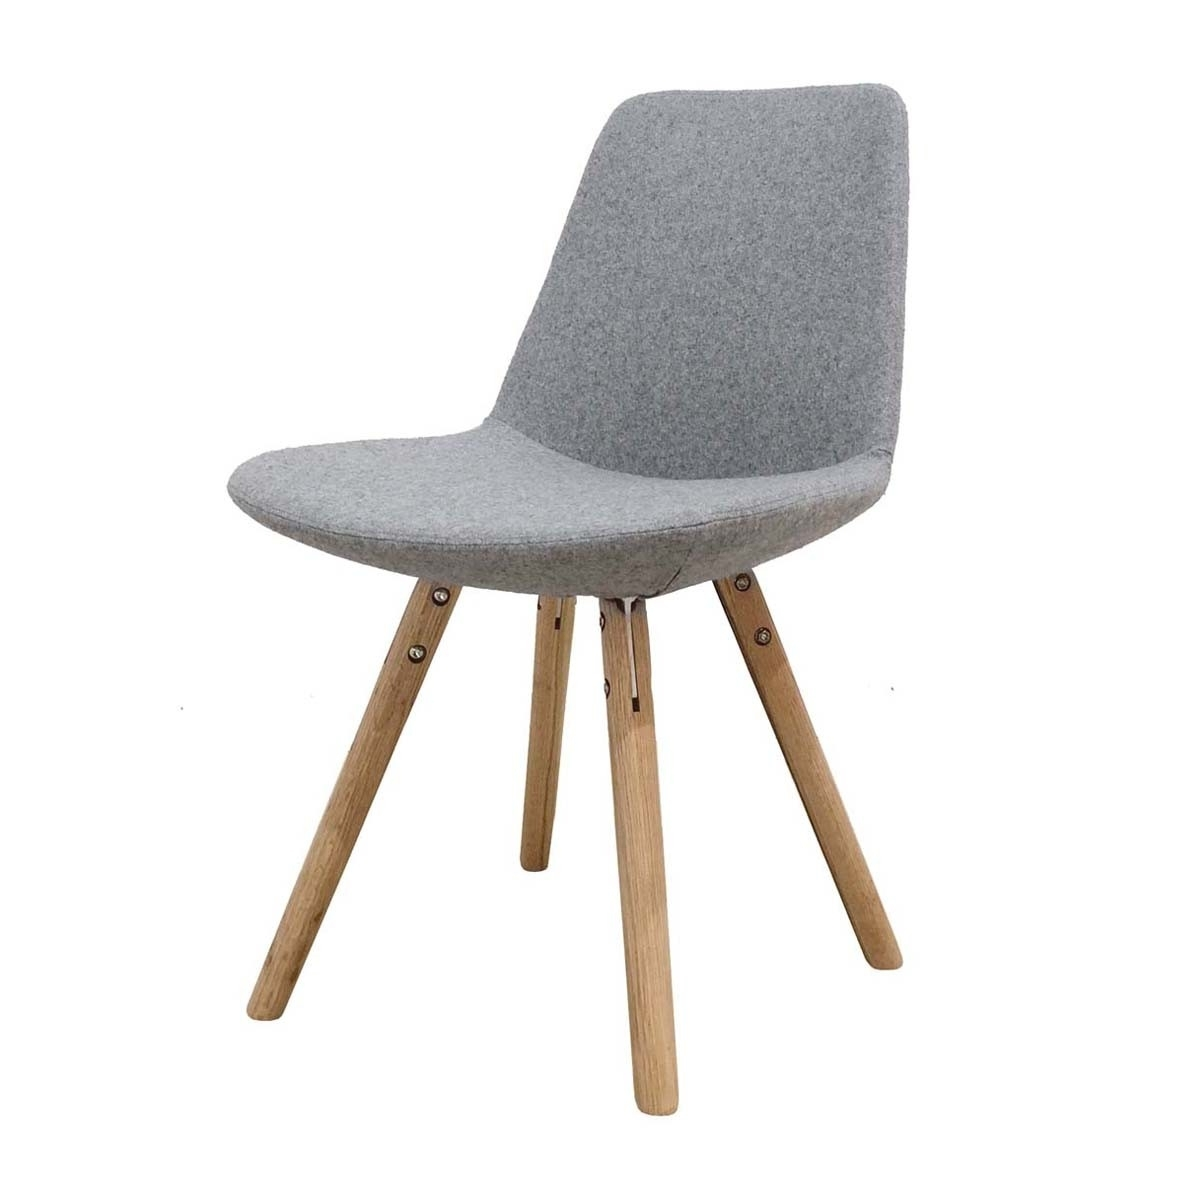 Best And Newest Grey Dining Chairs Regarding Life Interiors – Parker Wooden Dining Chair (Oak, Grey) – Modern (View 3 of 20)